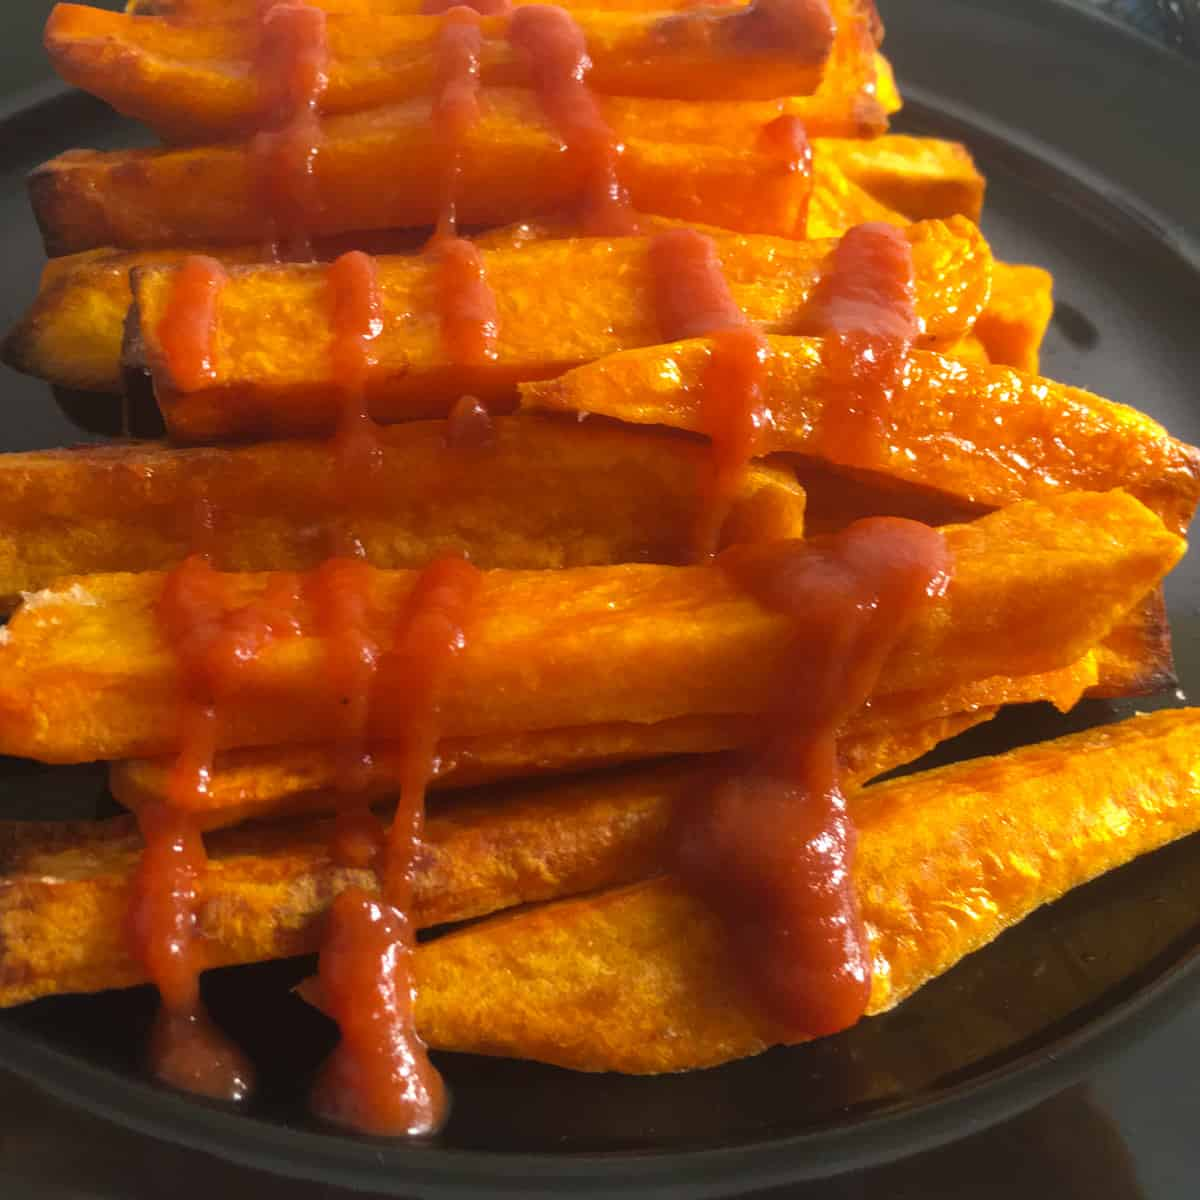 roasted yams with ketchup